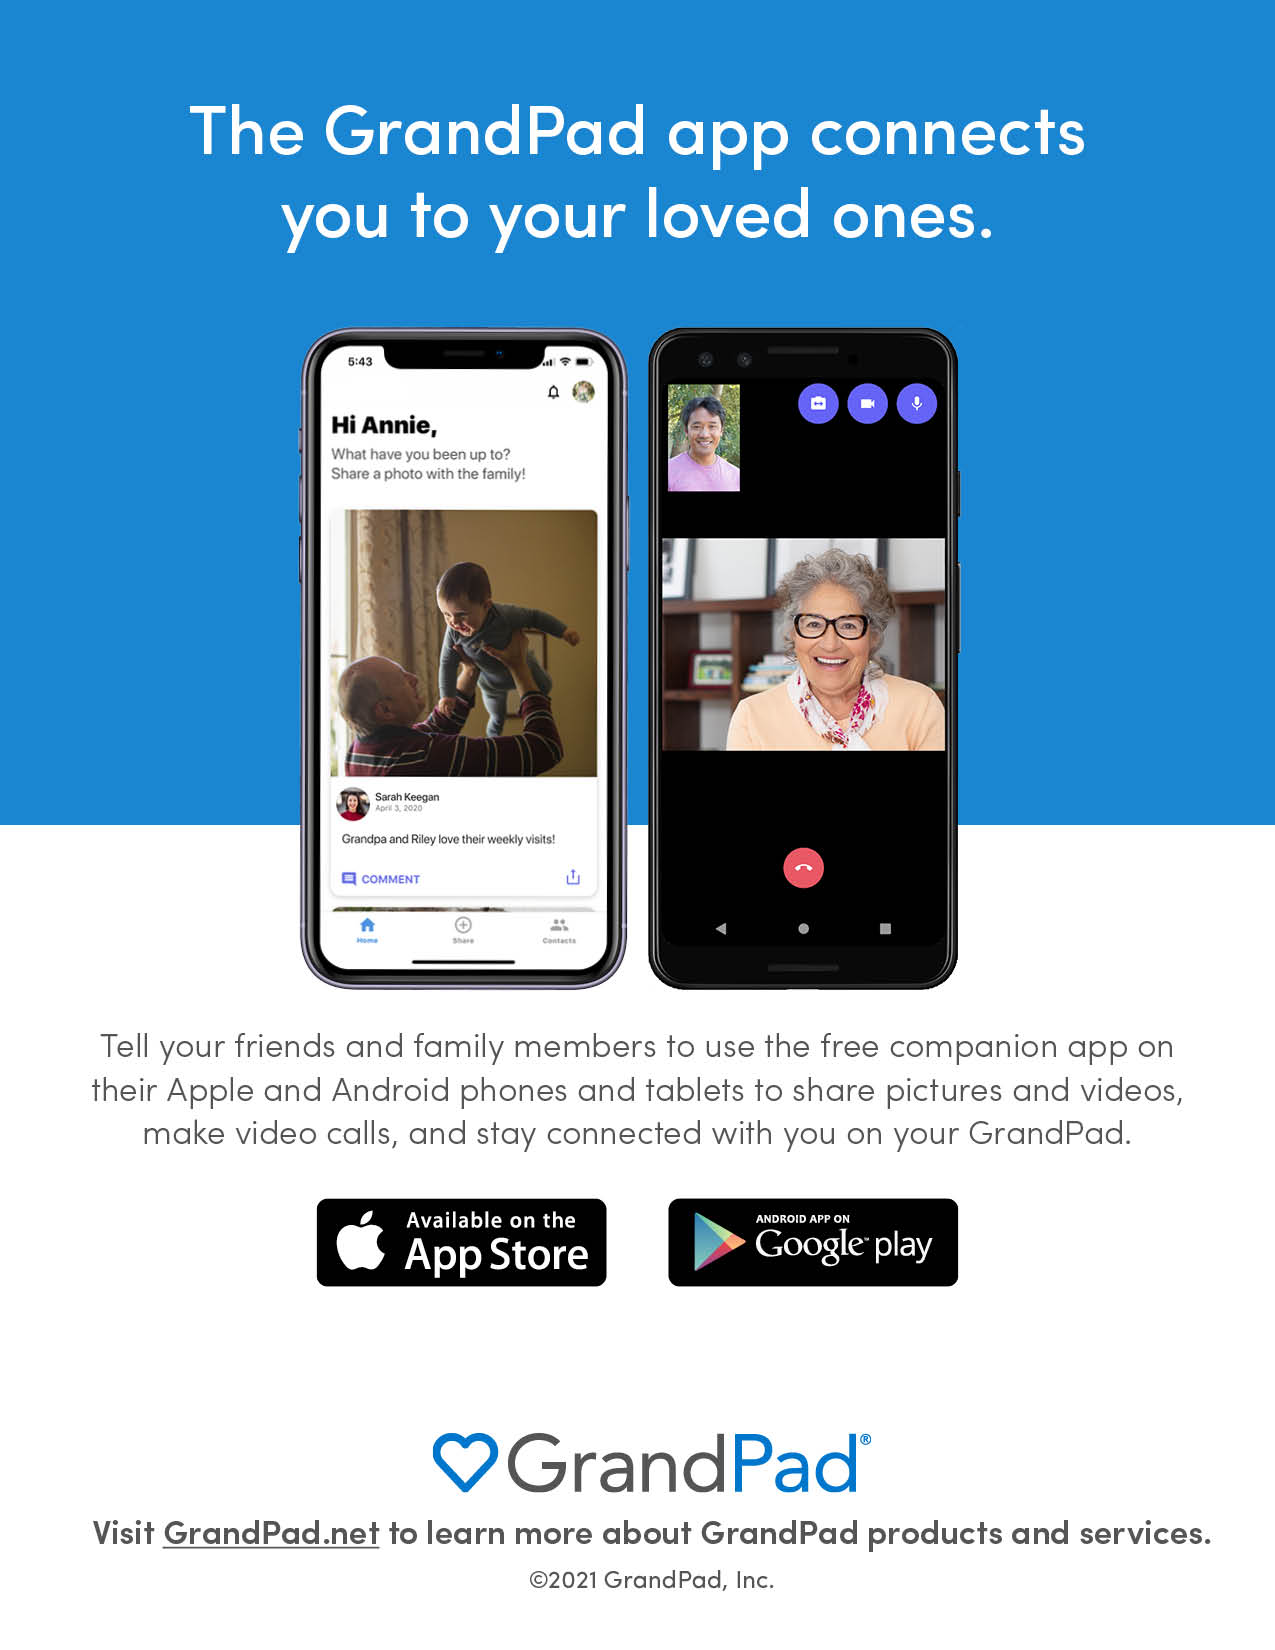 Be sure to connect family with the free companion app